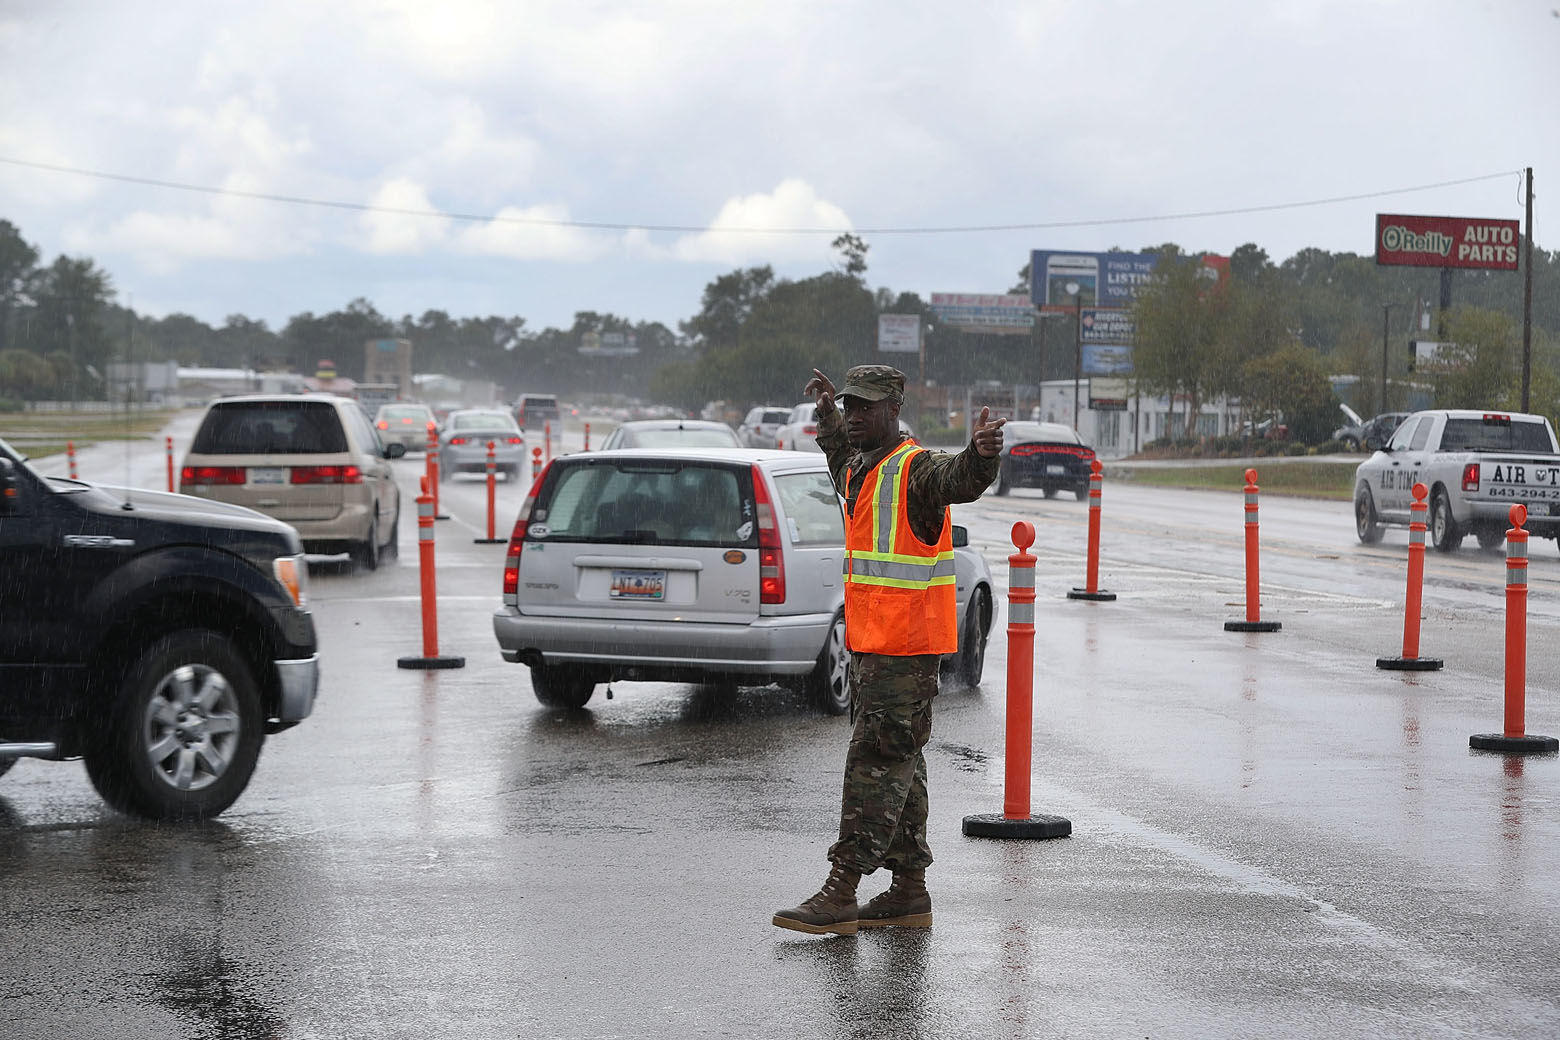 MYRTLE BEACH, SC - SEPTEMBER 11:  PFC. Traequan Shaw of the  South Carolina National Guard directs traffic onto US 501 as the South Carolina government ordered that traffic use all the lanes on the route leading away from the coast to facilitate the evacuation of people ahead of the arrival of Hurricane Florence on September 11, 2018 in Myrtle Beach, United States. Hurricane Florence is expected to arrive on Friday, possibly as a category 4 storm along the Virginia, North Carolina and South Carolina coastline.  (Photo by Joe Raedle/Getty Images)